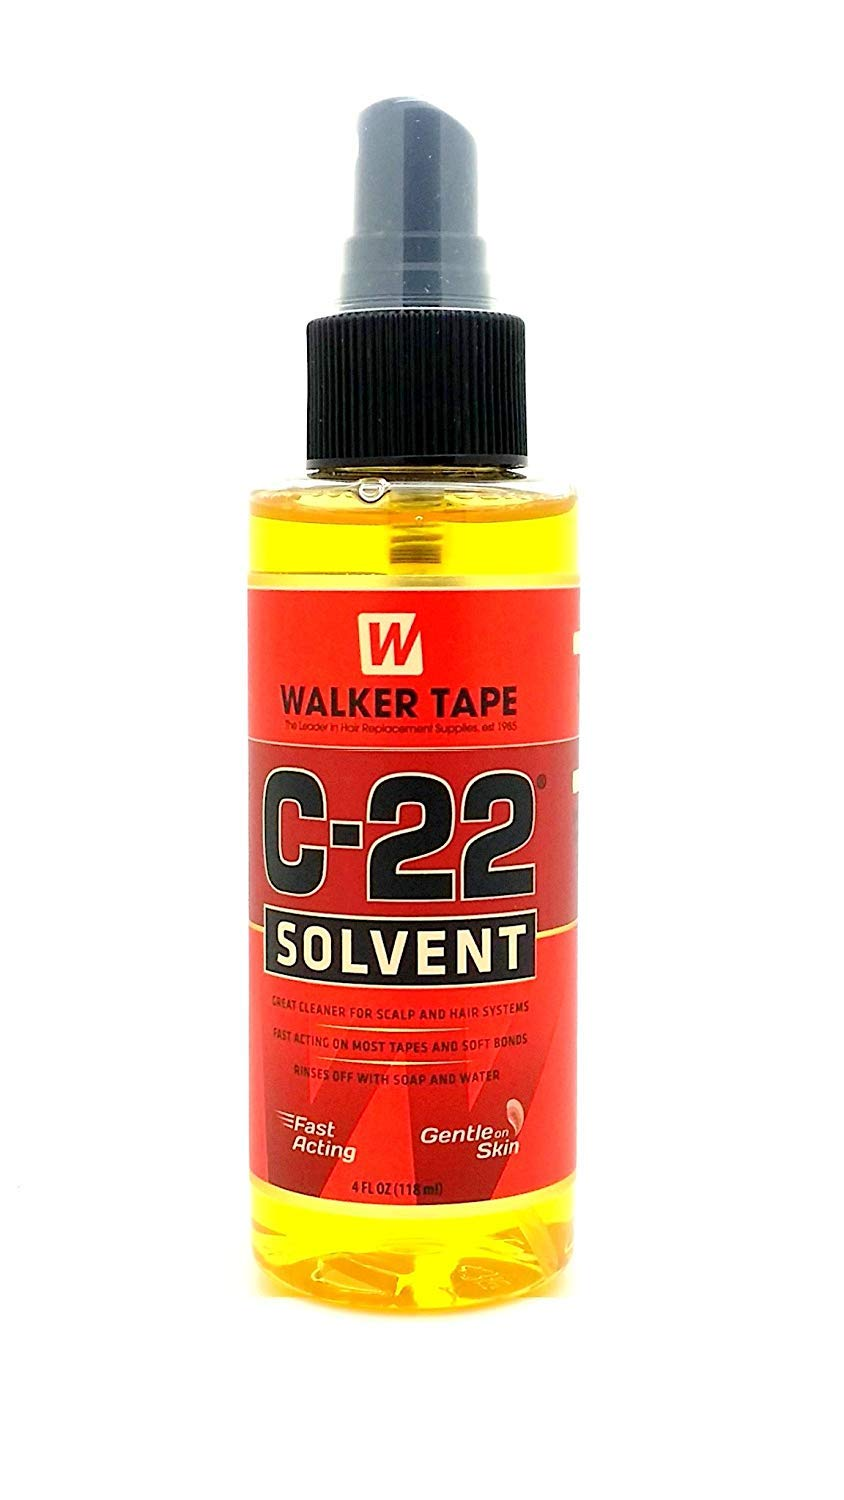 Walker Tape C-22 Solvent 118 ml